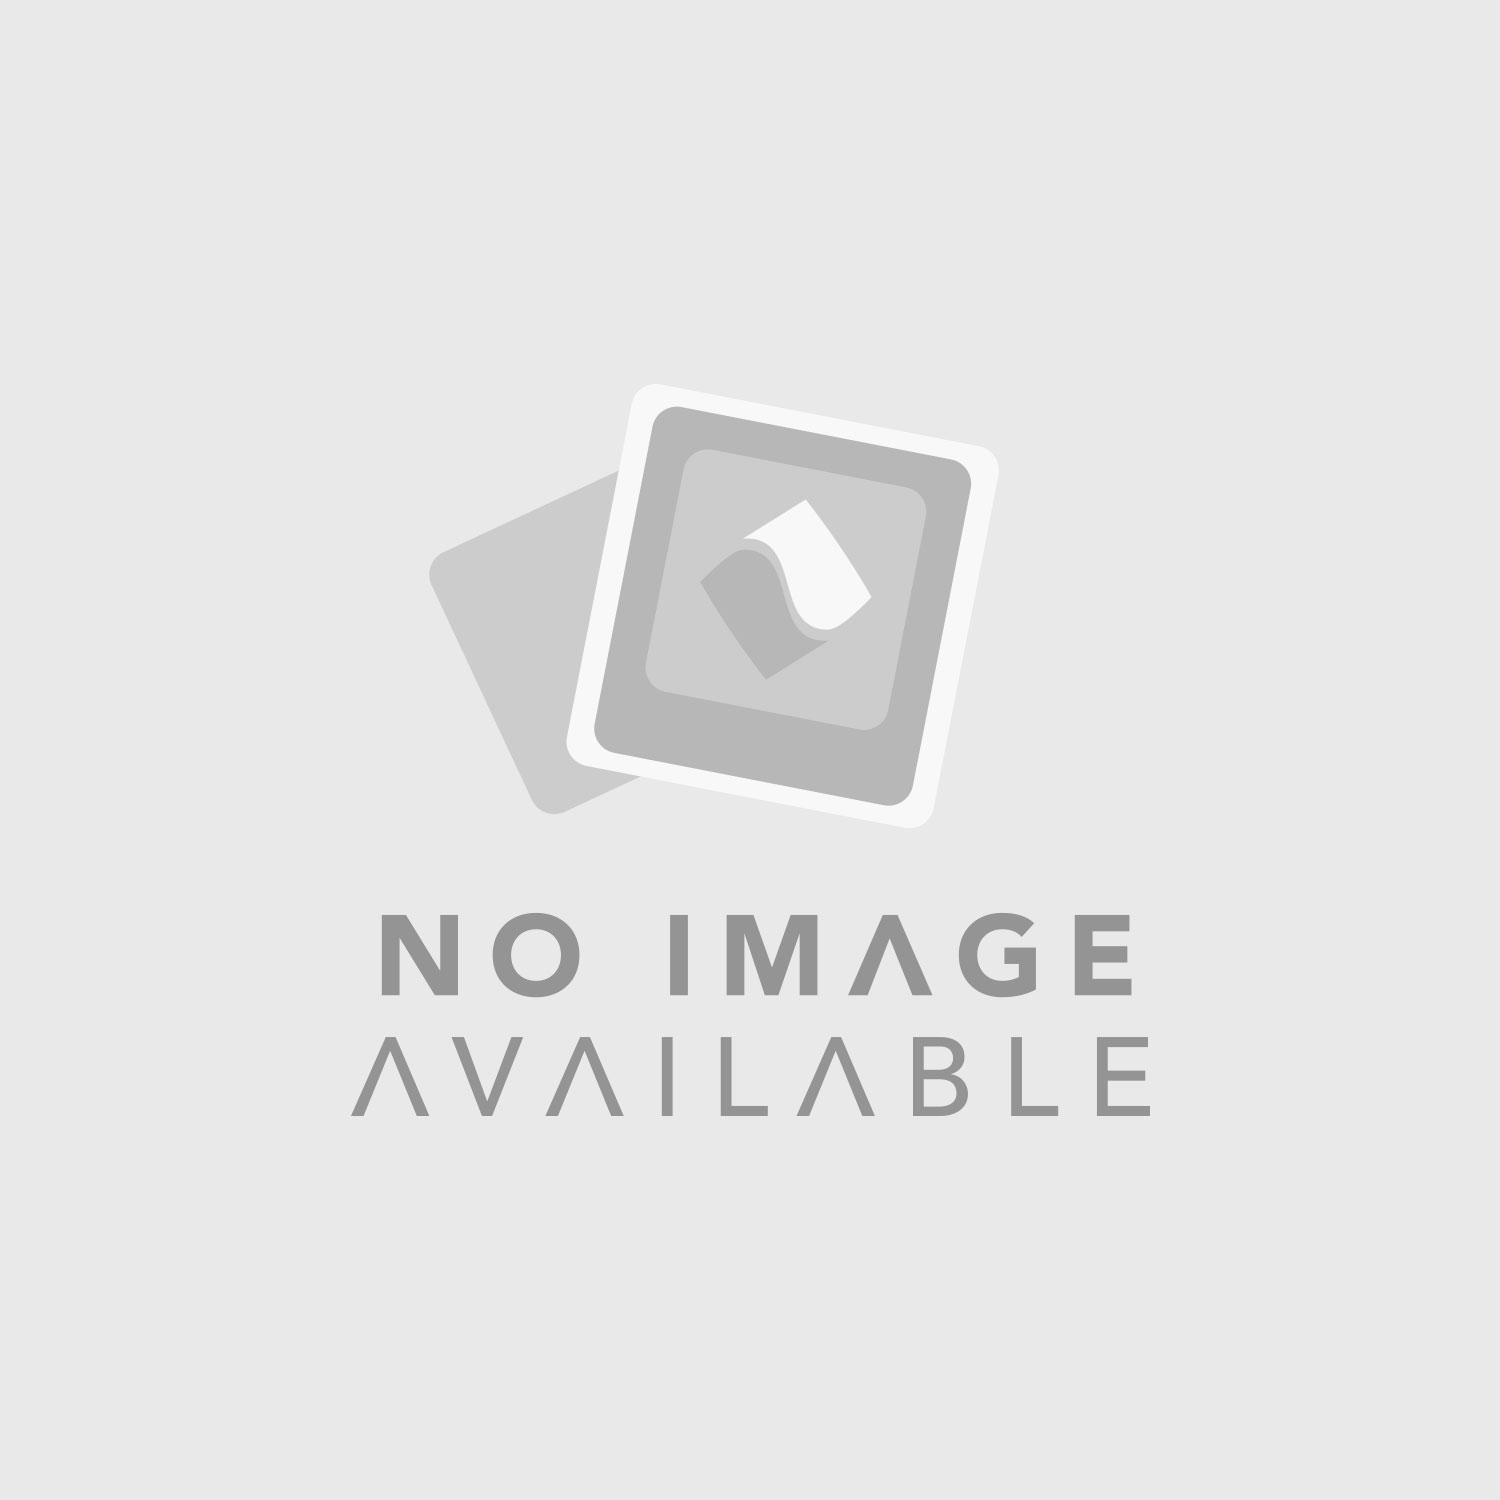 C2G Active High Speed HDMI Cable 4K 30Hz - In-Wall, CL3-Rated (100')